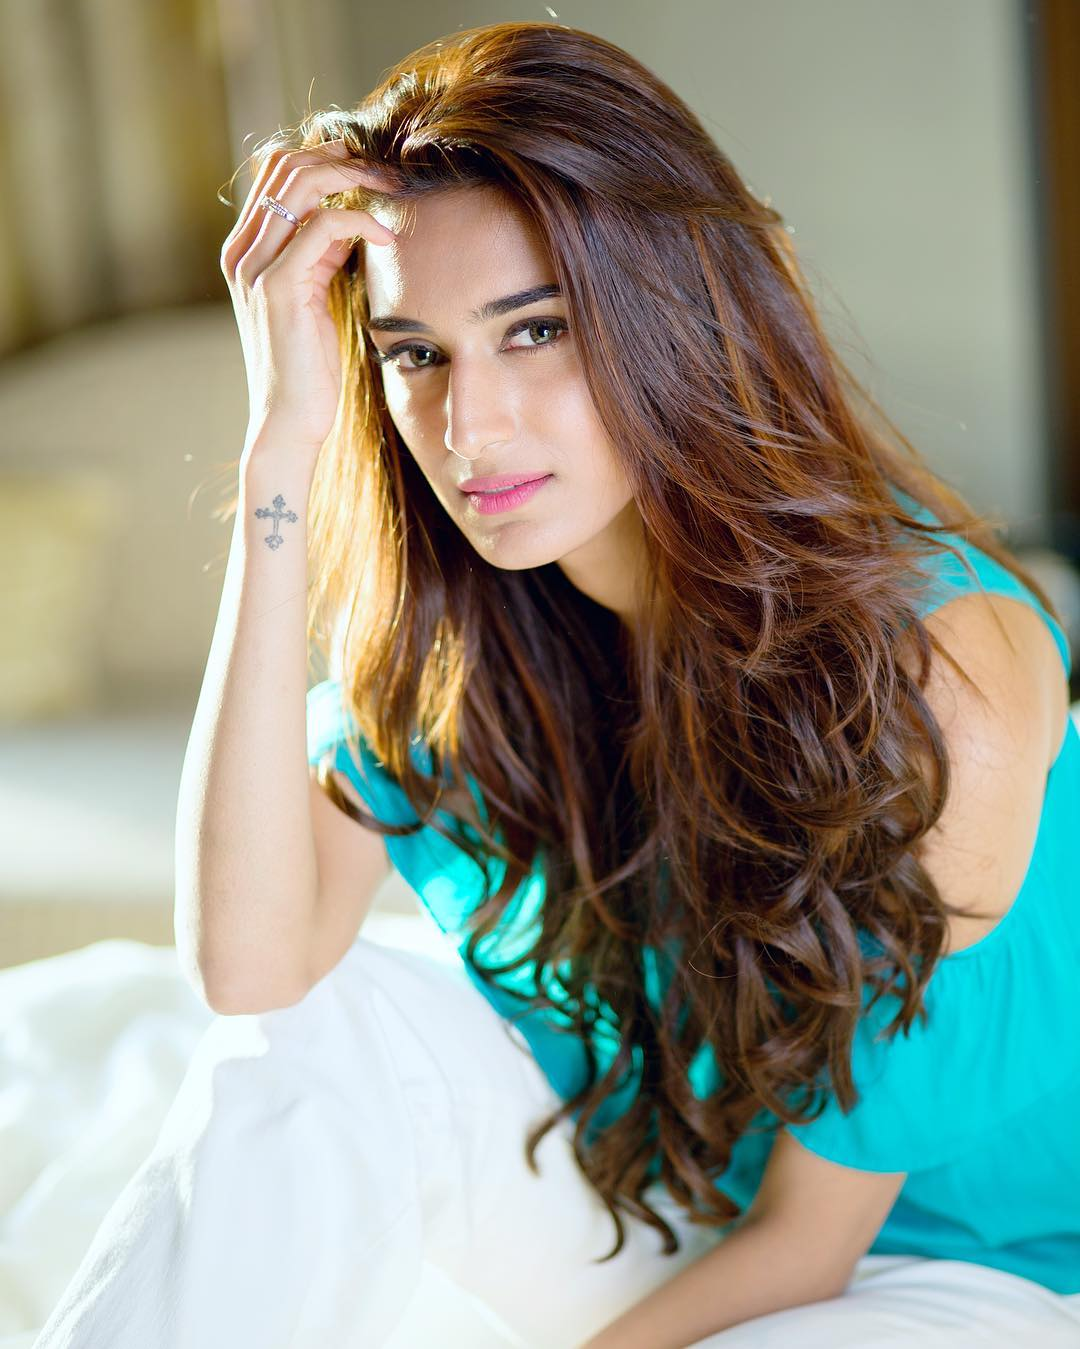 Erica-Prerna-hot-and-sexy-look-beautiful-hair-photos